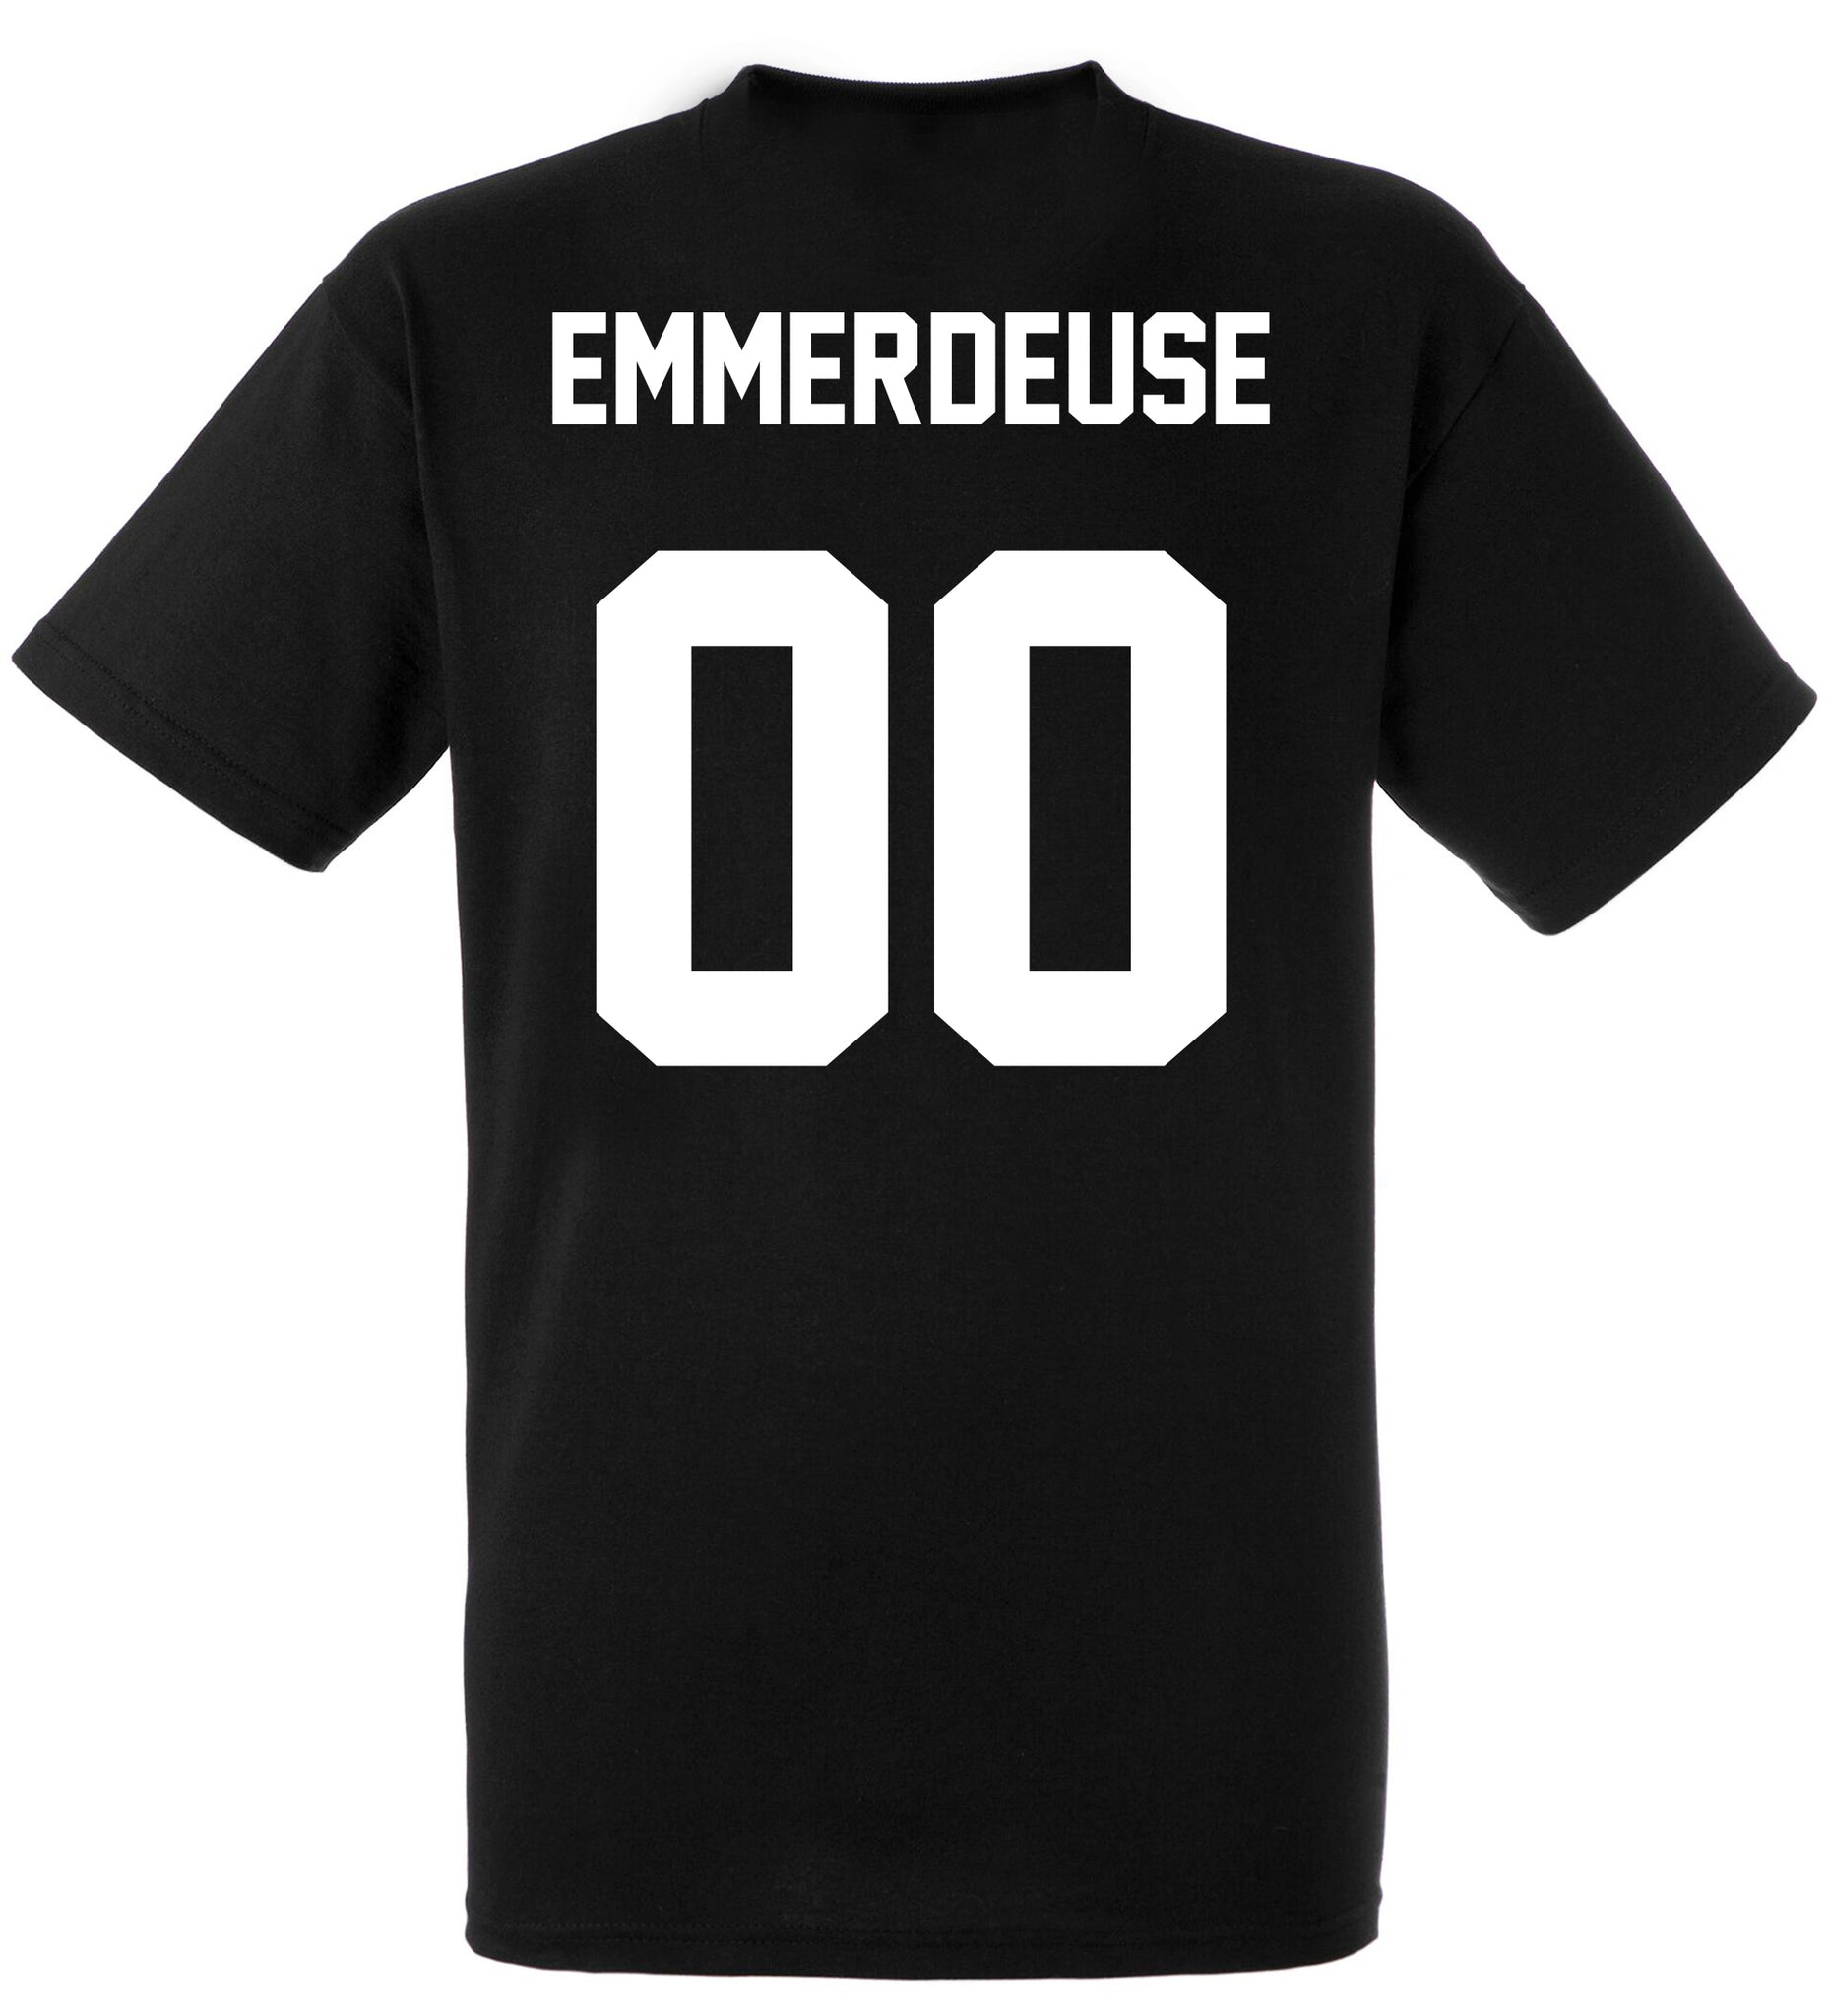 TSHIRT EMMERDEUSE BACK